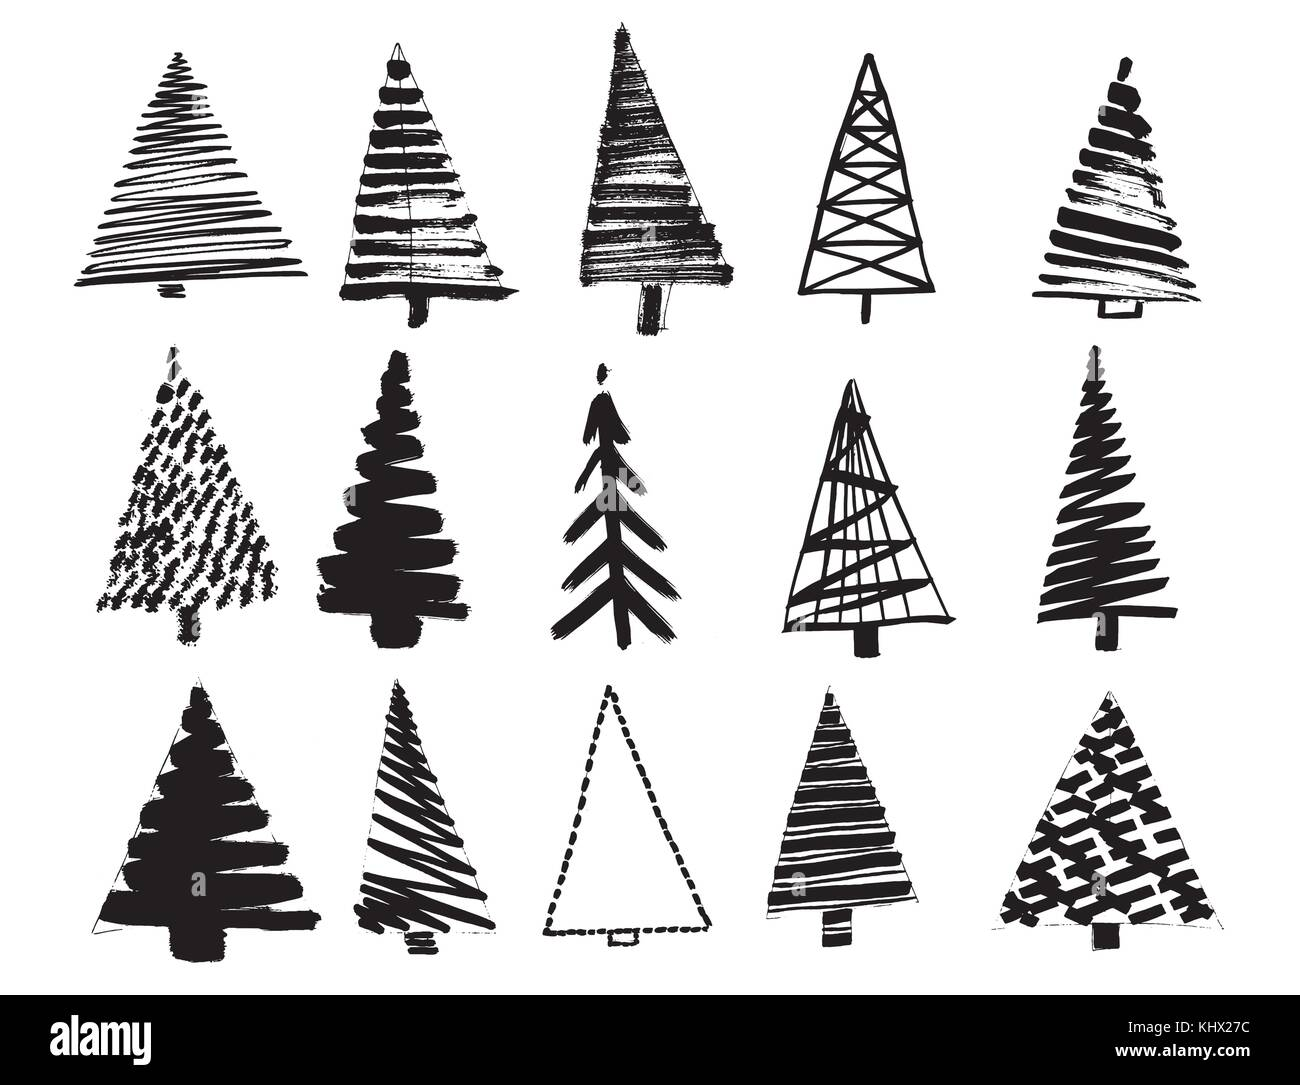 Christmas Tree Sketch Set Isolated On White Background Vector Stock